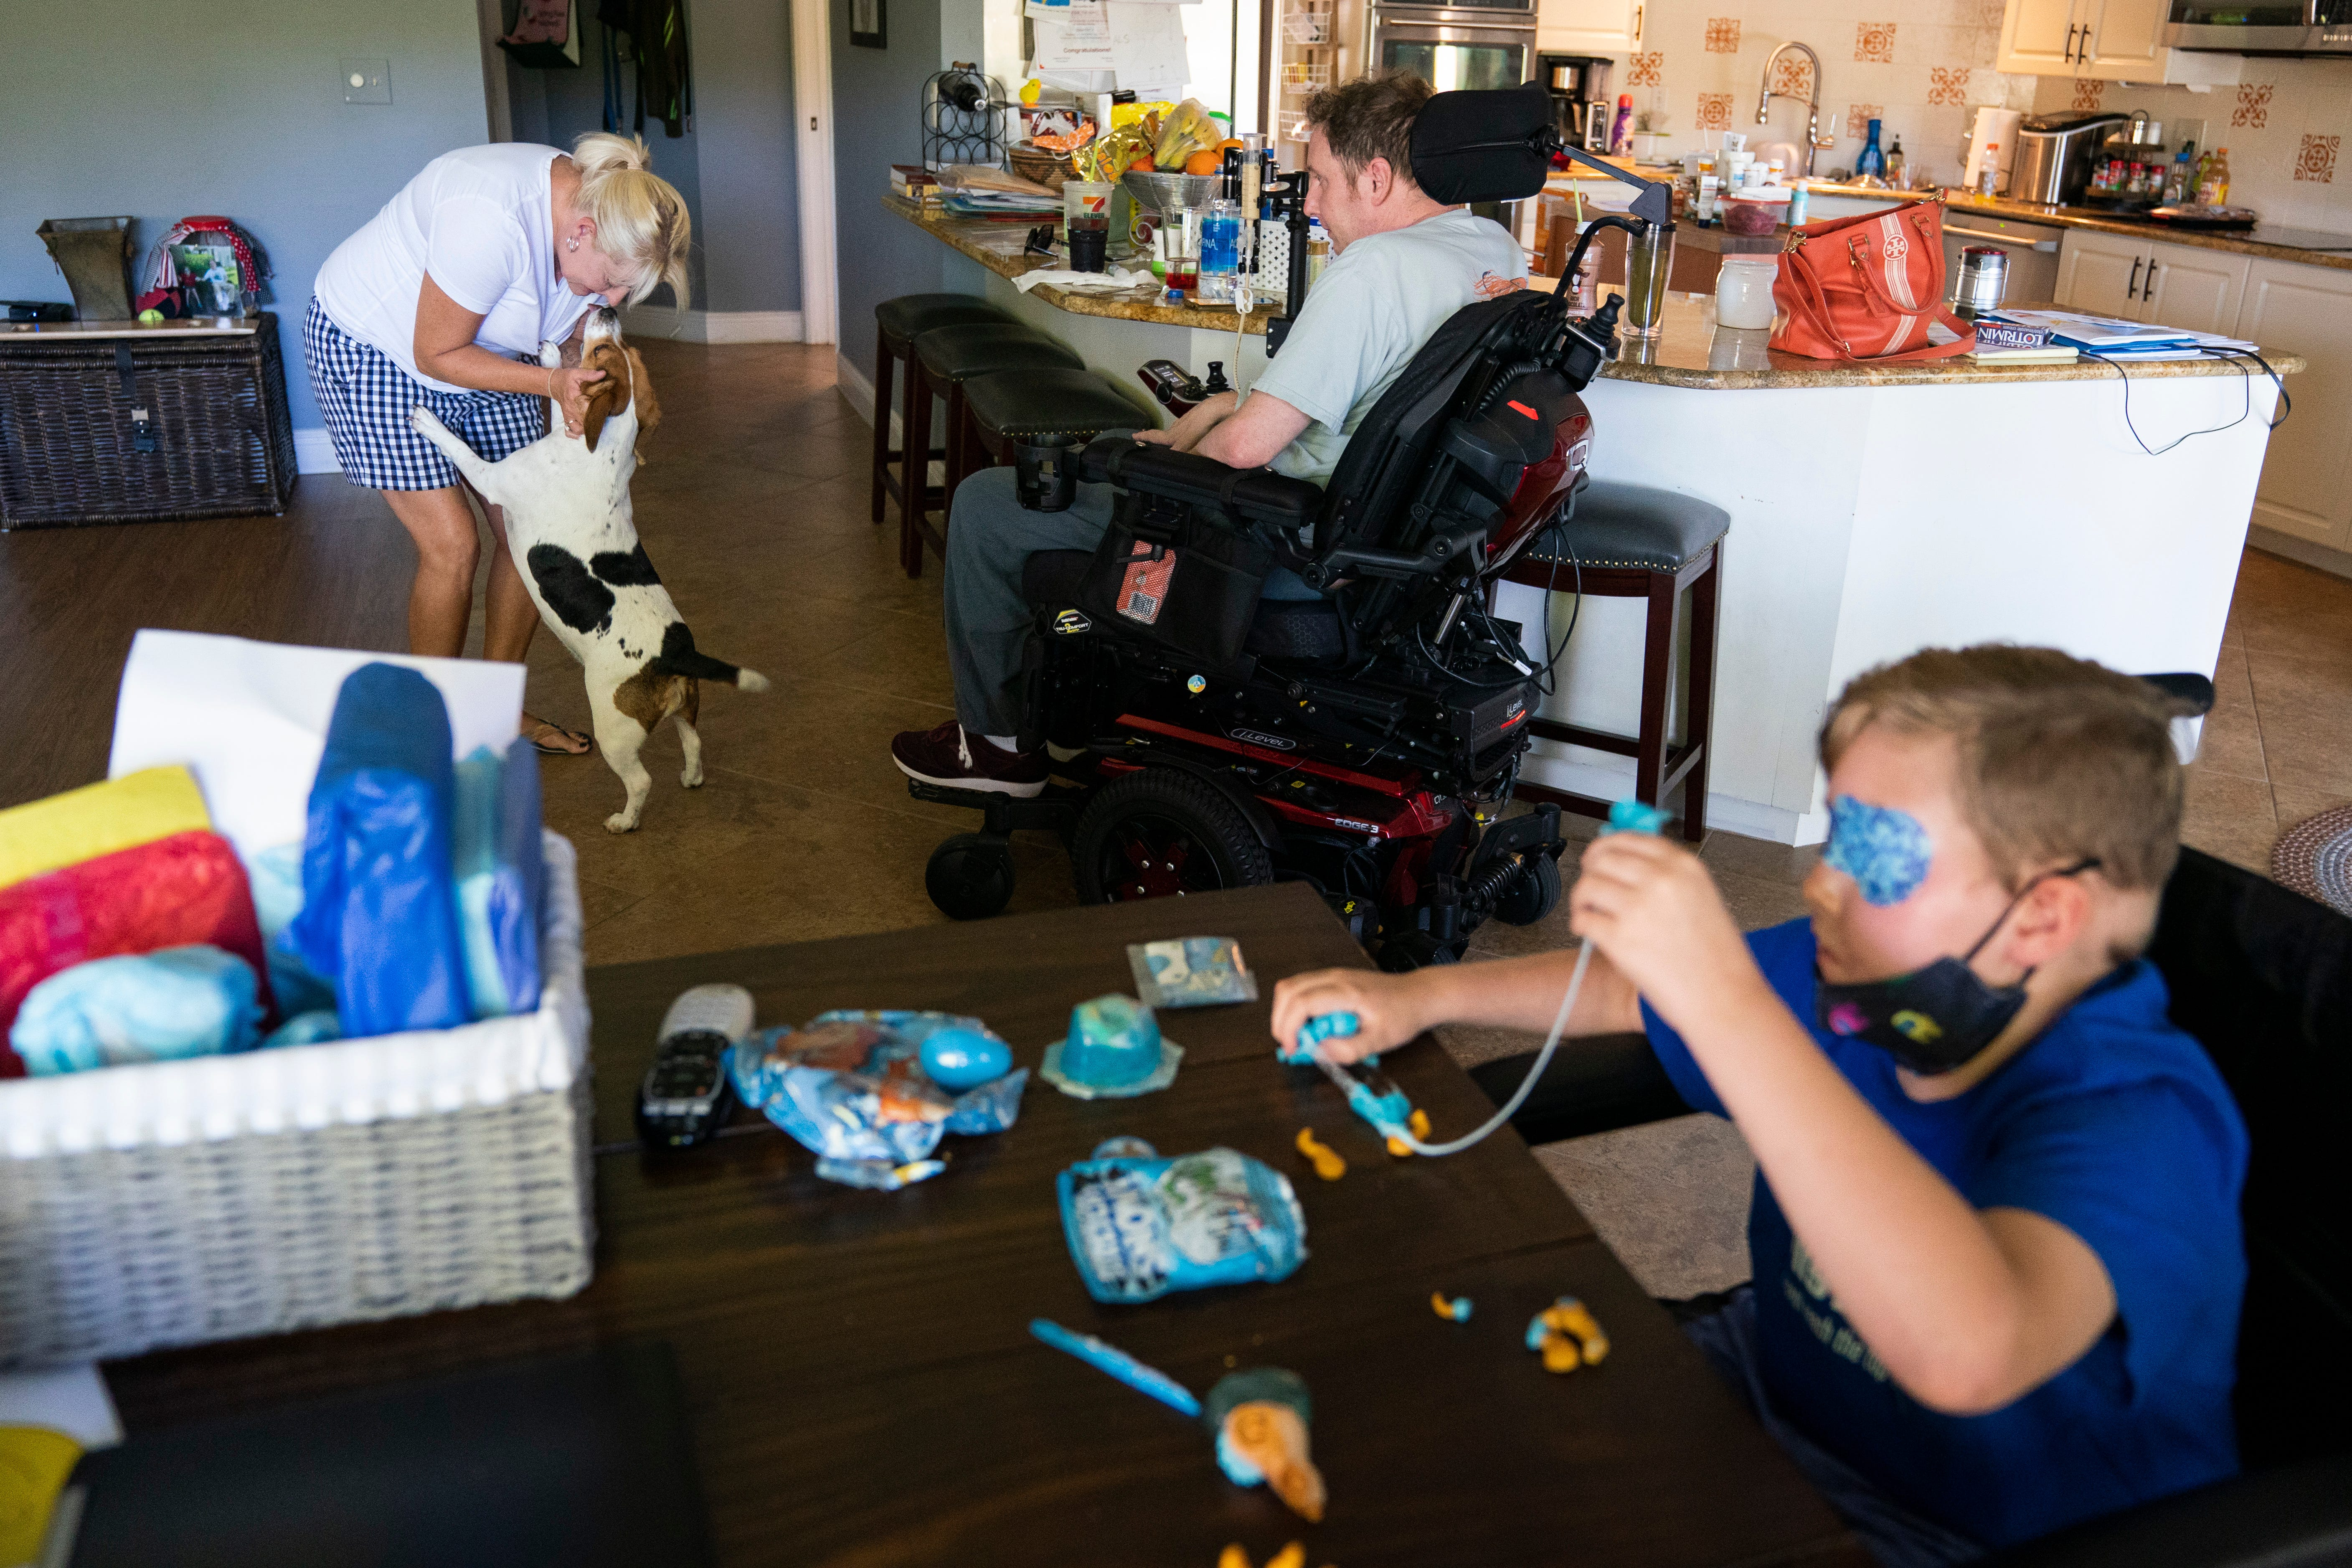 """Gay Valimont, left, pets Daisy, the family beagle, while her husband Brian Valimont, center, watches and their son Eli Valimont, 8, right, plays with slime at their home in North Naples on Friday, April 30, 2021. The Valimonts' lives have changed drastically over the past year — Brian was diagnosed with ALS in August of 2020 and a few months later, Eli was diagnosed with DIPG, an incurable brain tumor that begins in the brain stem. Despite the grief and stress, Gay cherishes every moment she has with her family. """"Take every moment and love each other,"""" she said."""